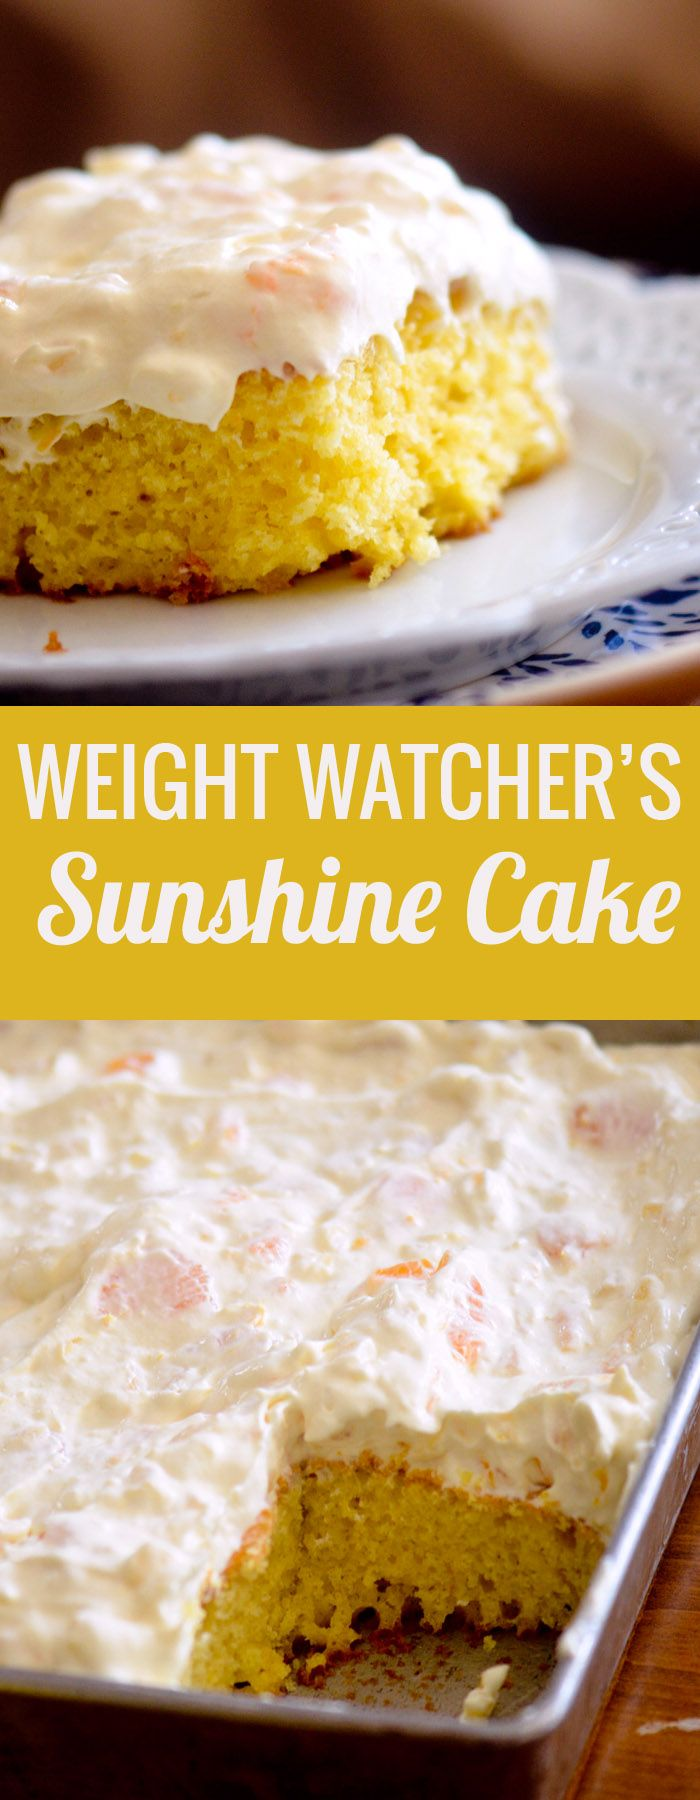 Pineapple Sunshine Cake - a light and refreshing cake made with mandarin oranges and pineapple - Recipe Diaries